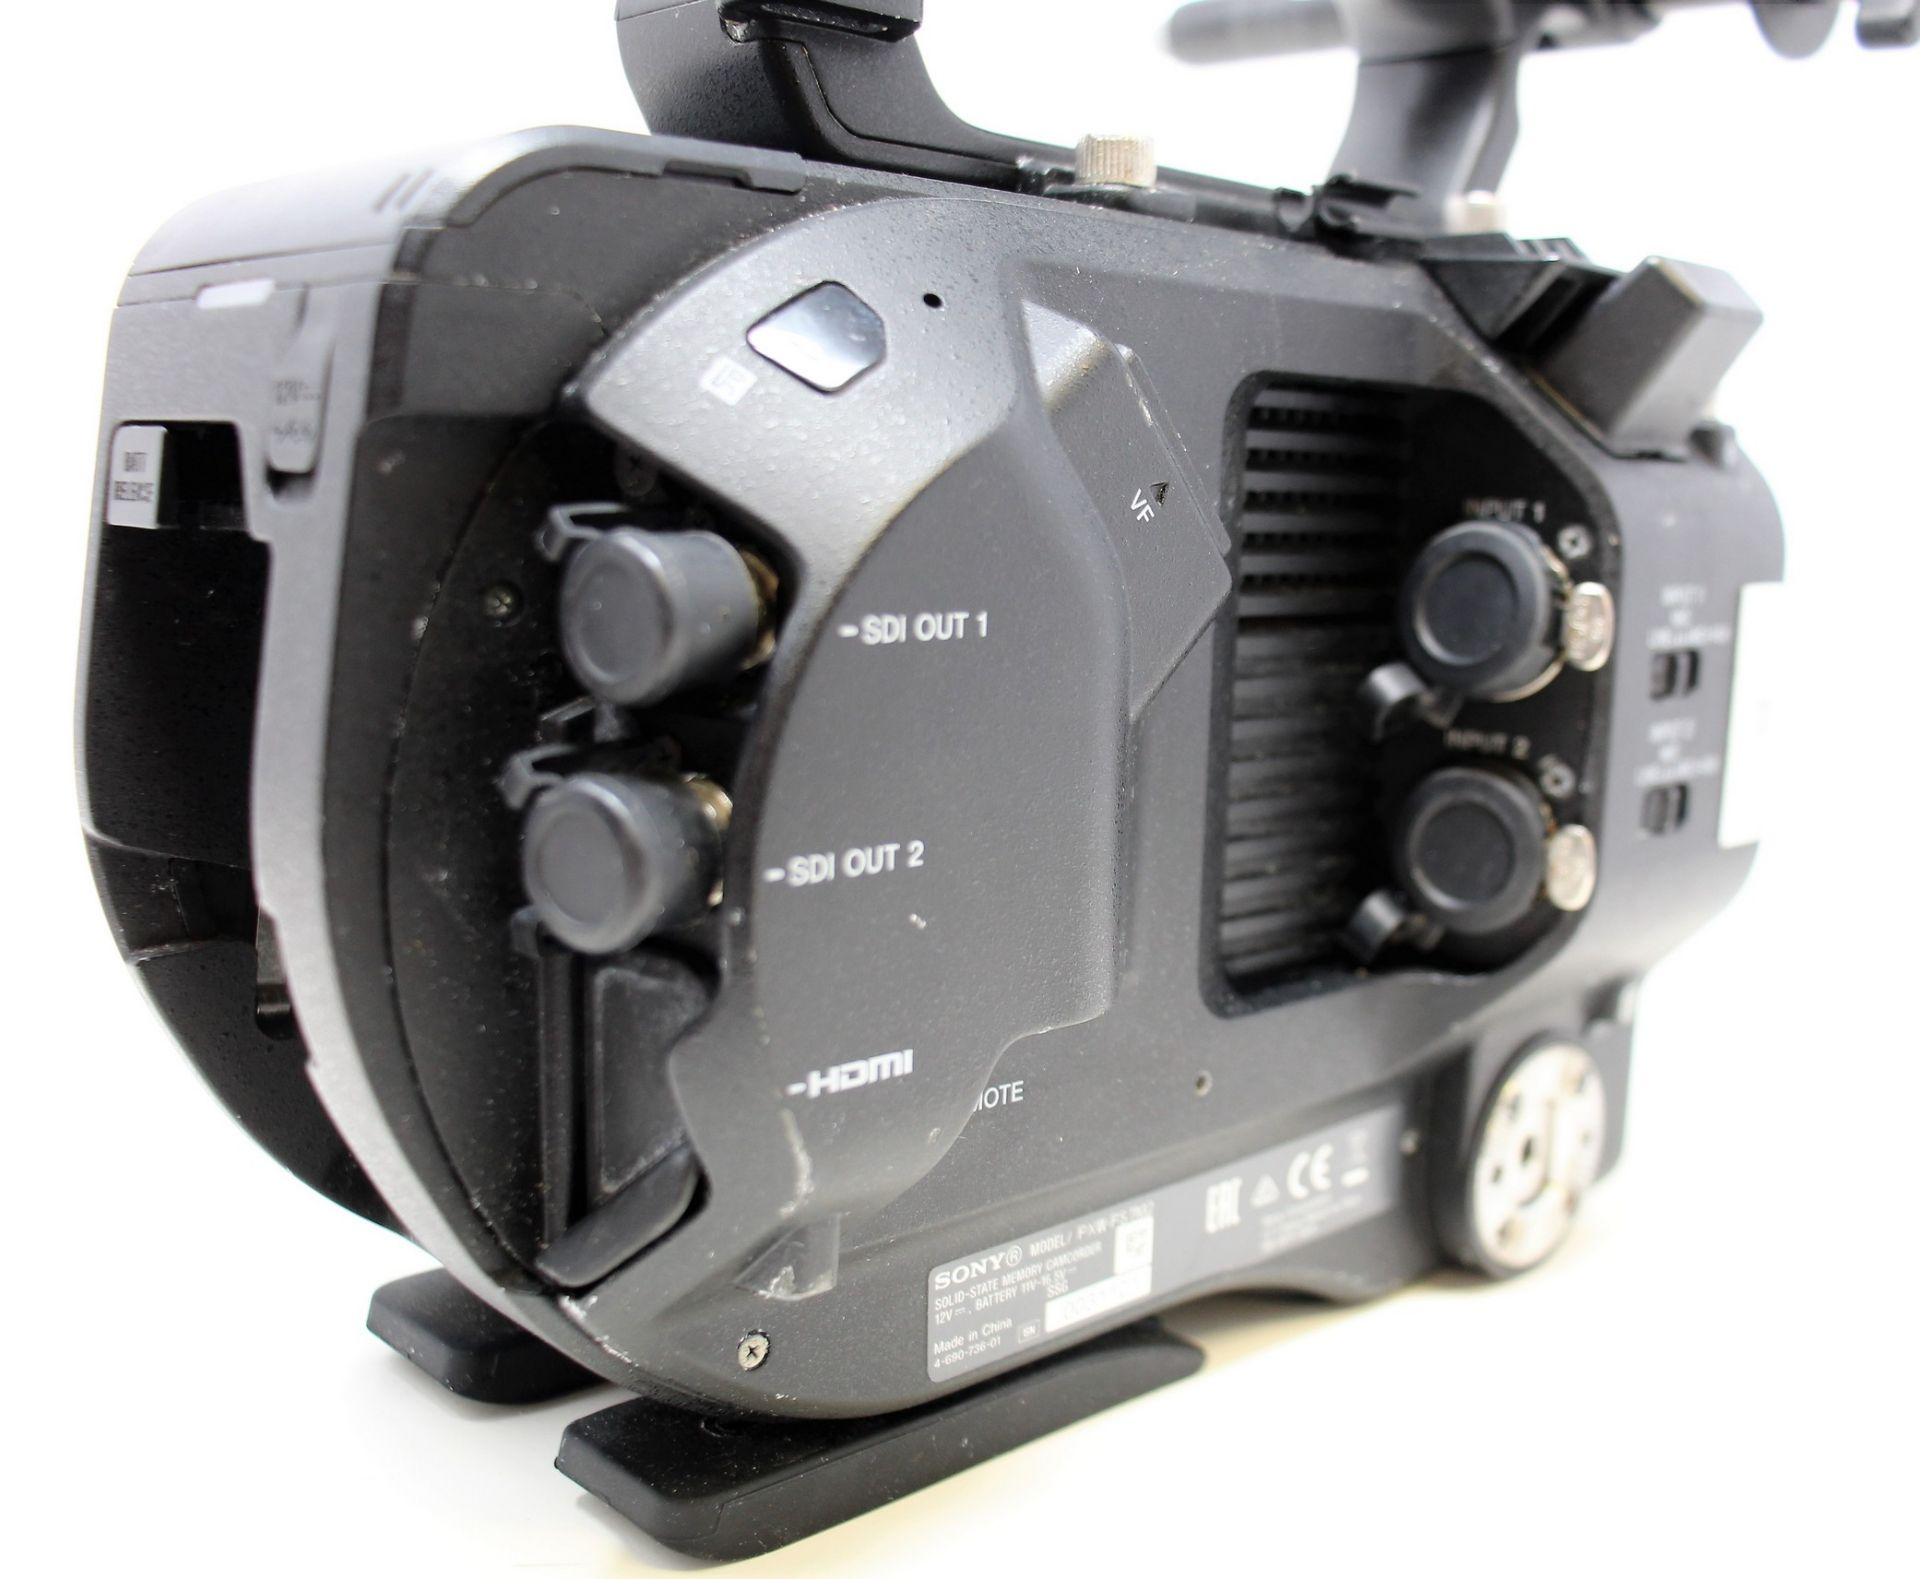 A pre-owned Sony PXW-FS7 II XDCAM 4K Super 35 E-mount Camera Body with Grip and LCD Monitor (M/N: - Image 11 of 33